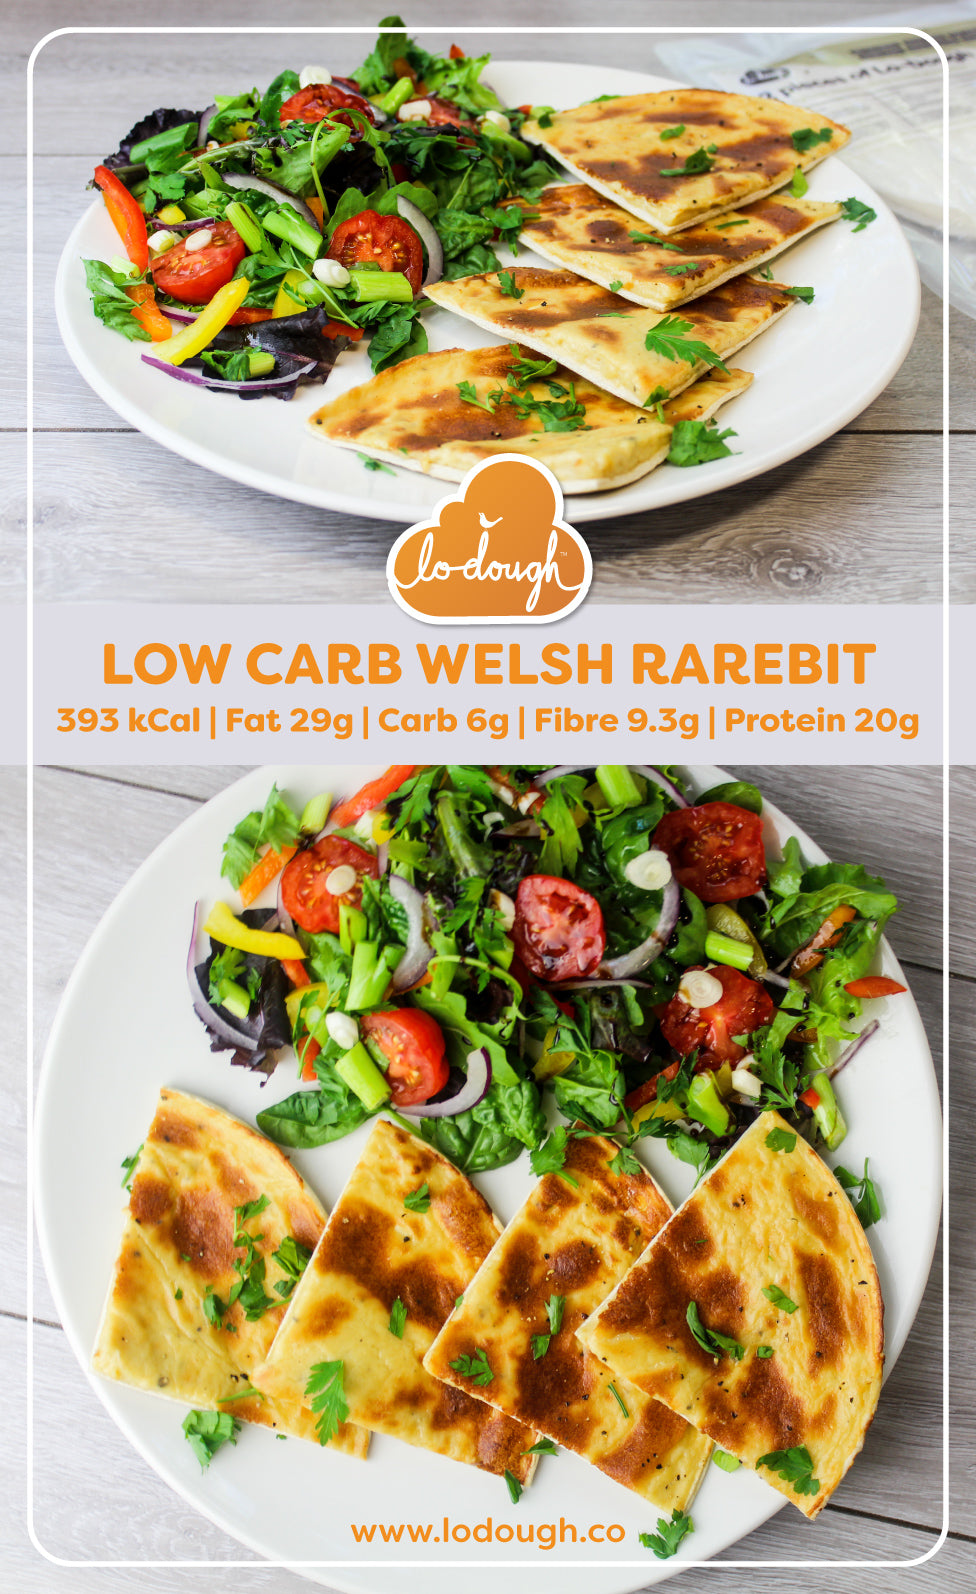 Low Carb Welsh Rarebit